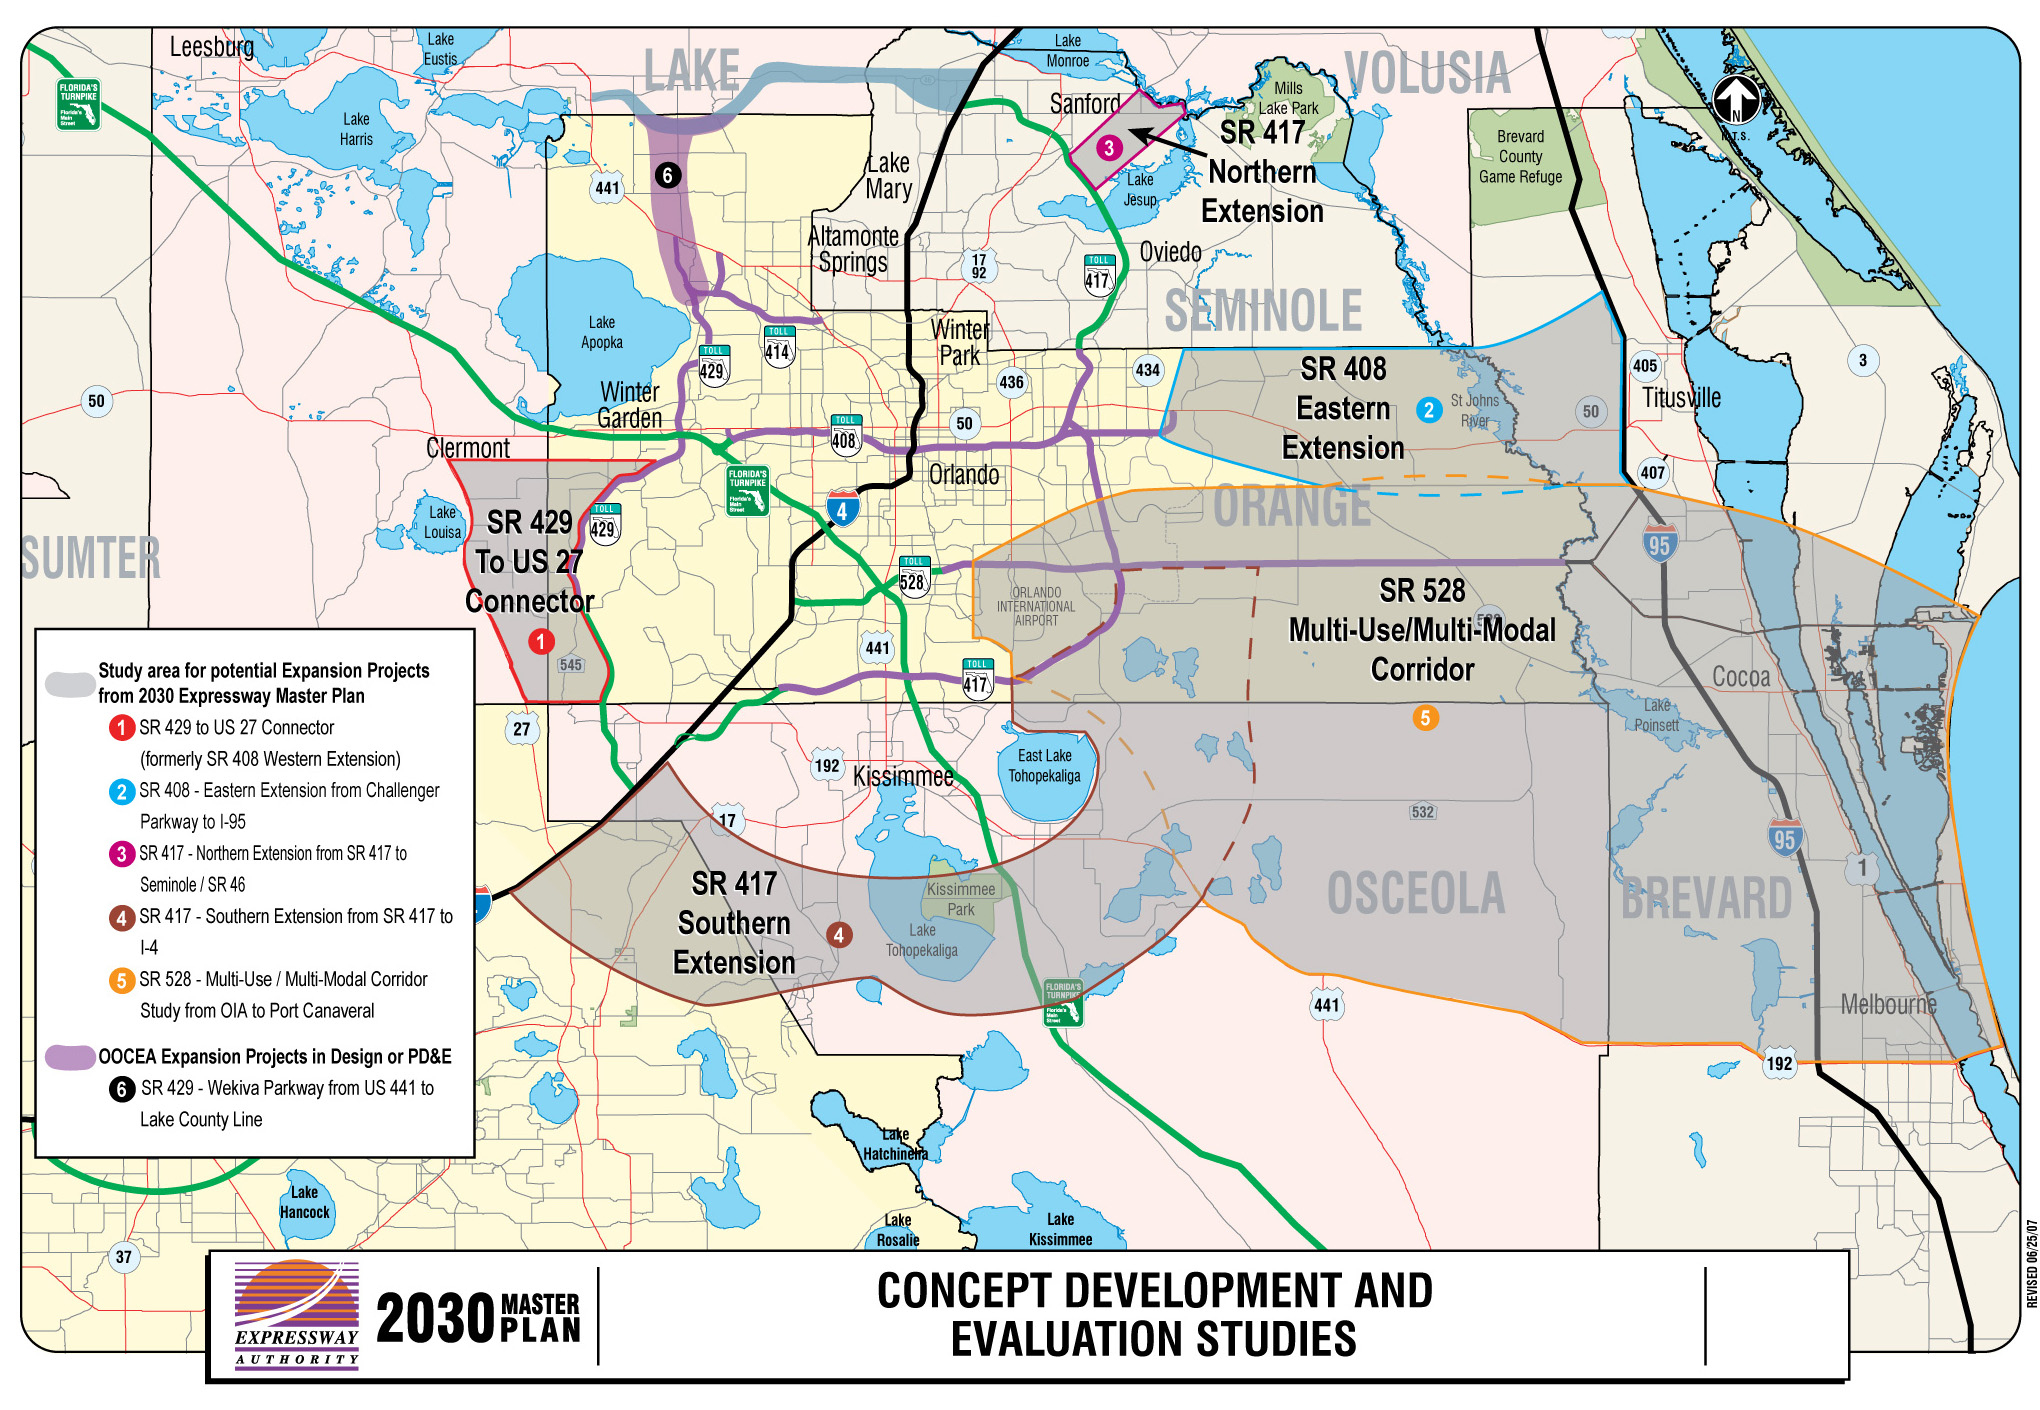 Road Maps Of Orlando And Travel Information | Download Free Road - Road Map Of Orlando Florida